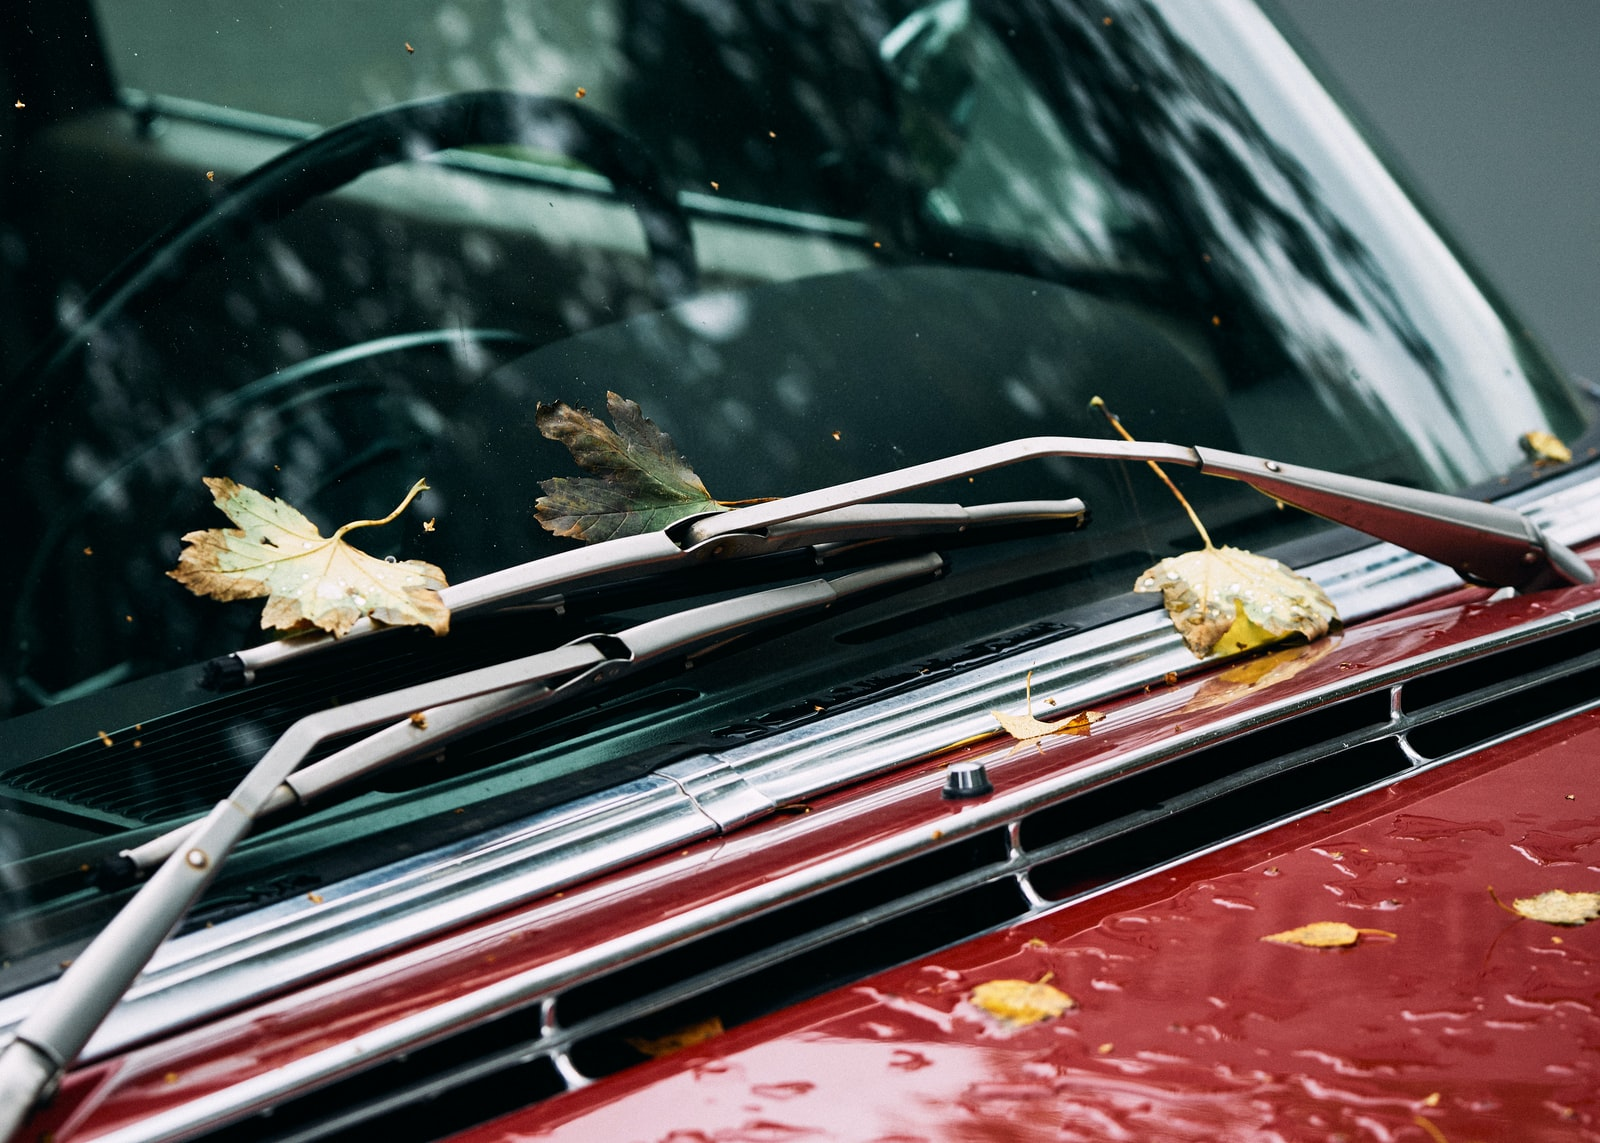 """Sony a6000 sample photo. """"Leaves on vehicle"""" photography"""